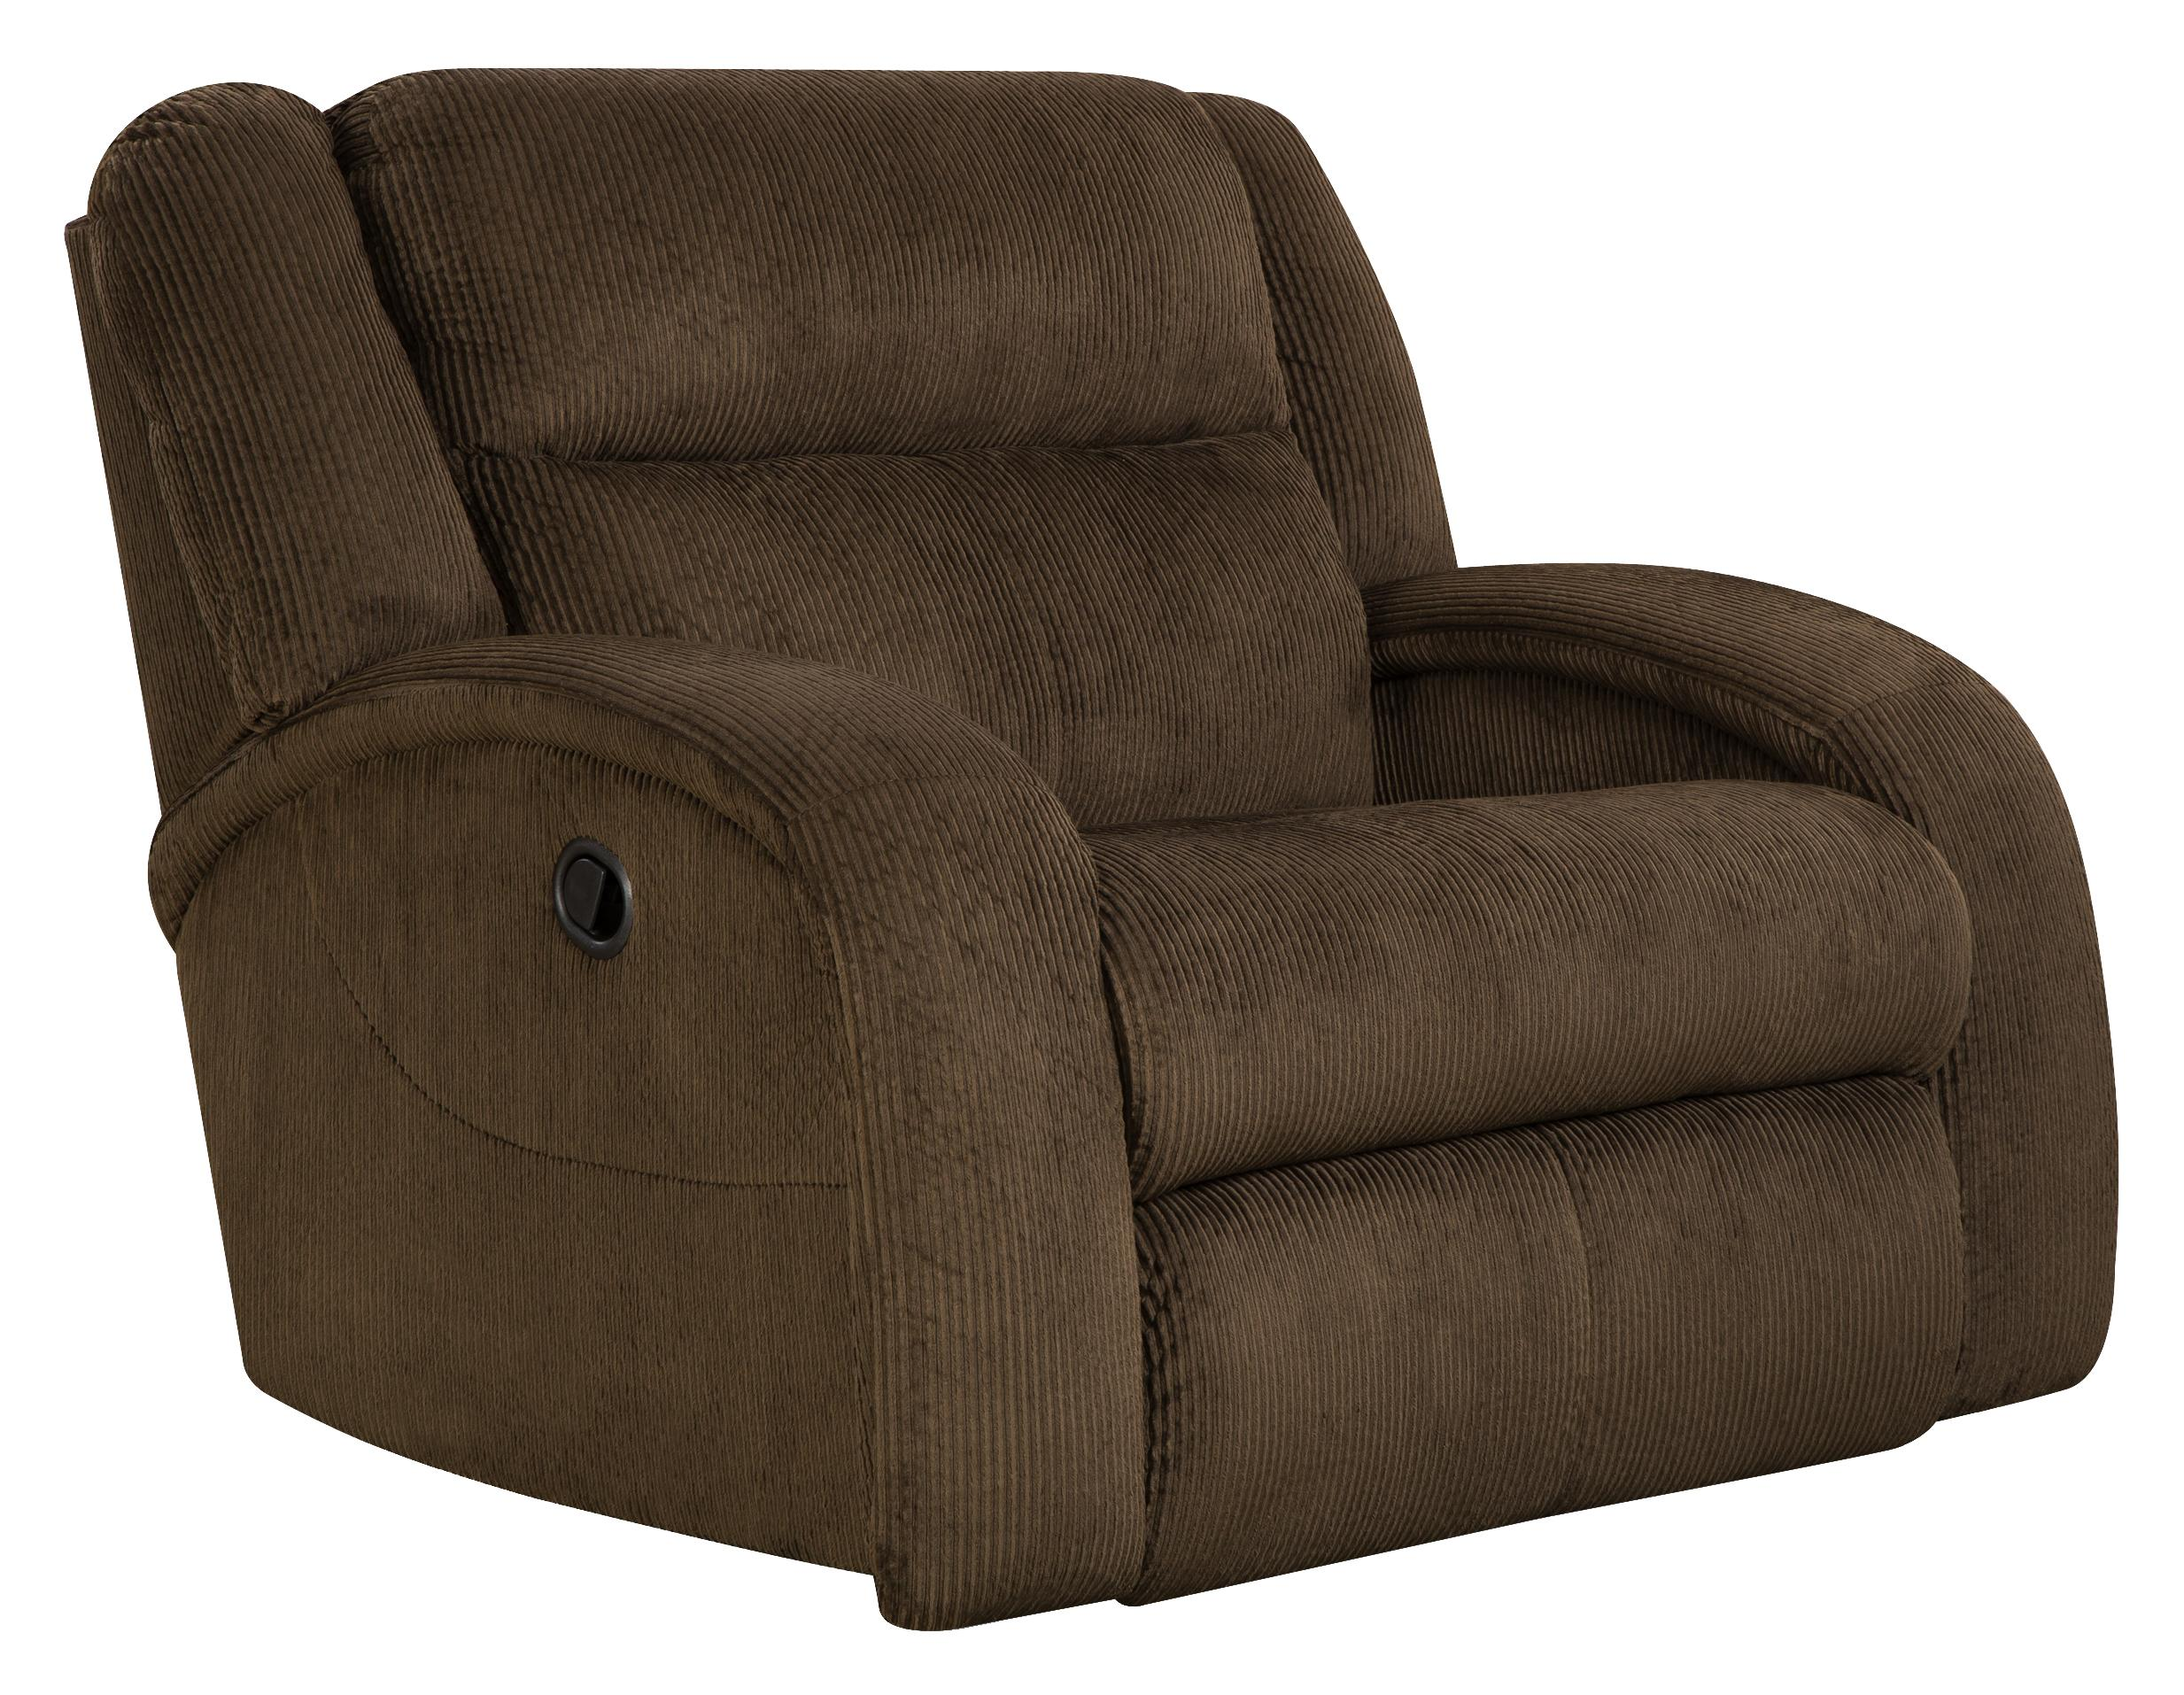 Chair In A Half Southern Motion Maverick 550 00 Recliner Chair And A Half